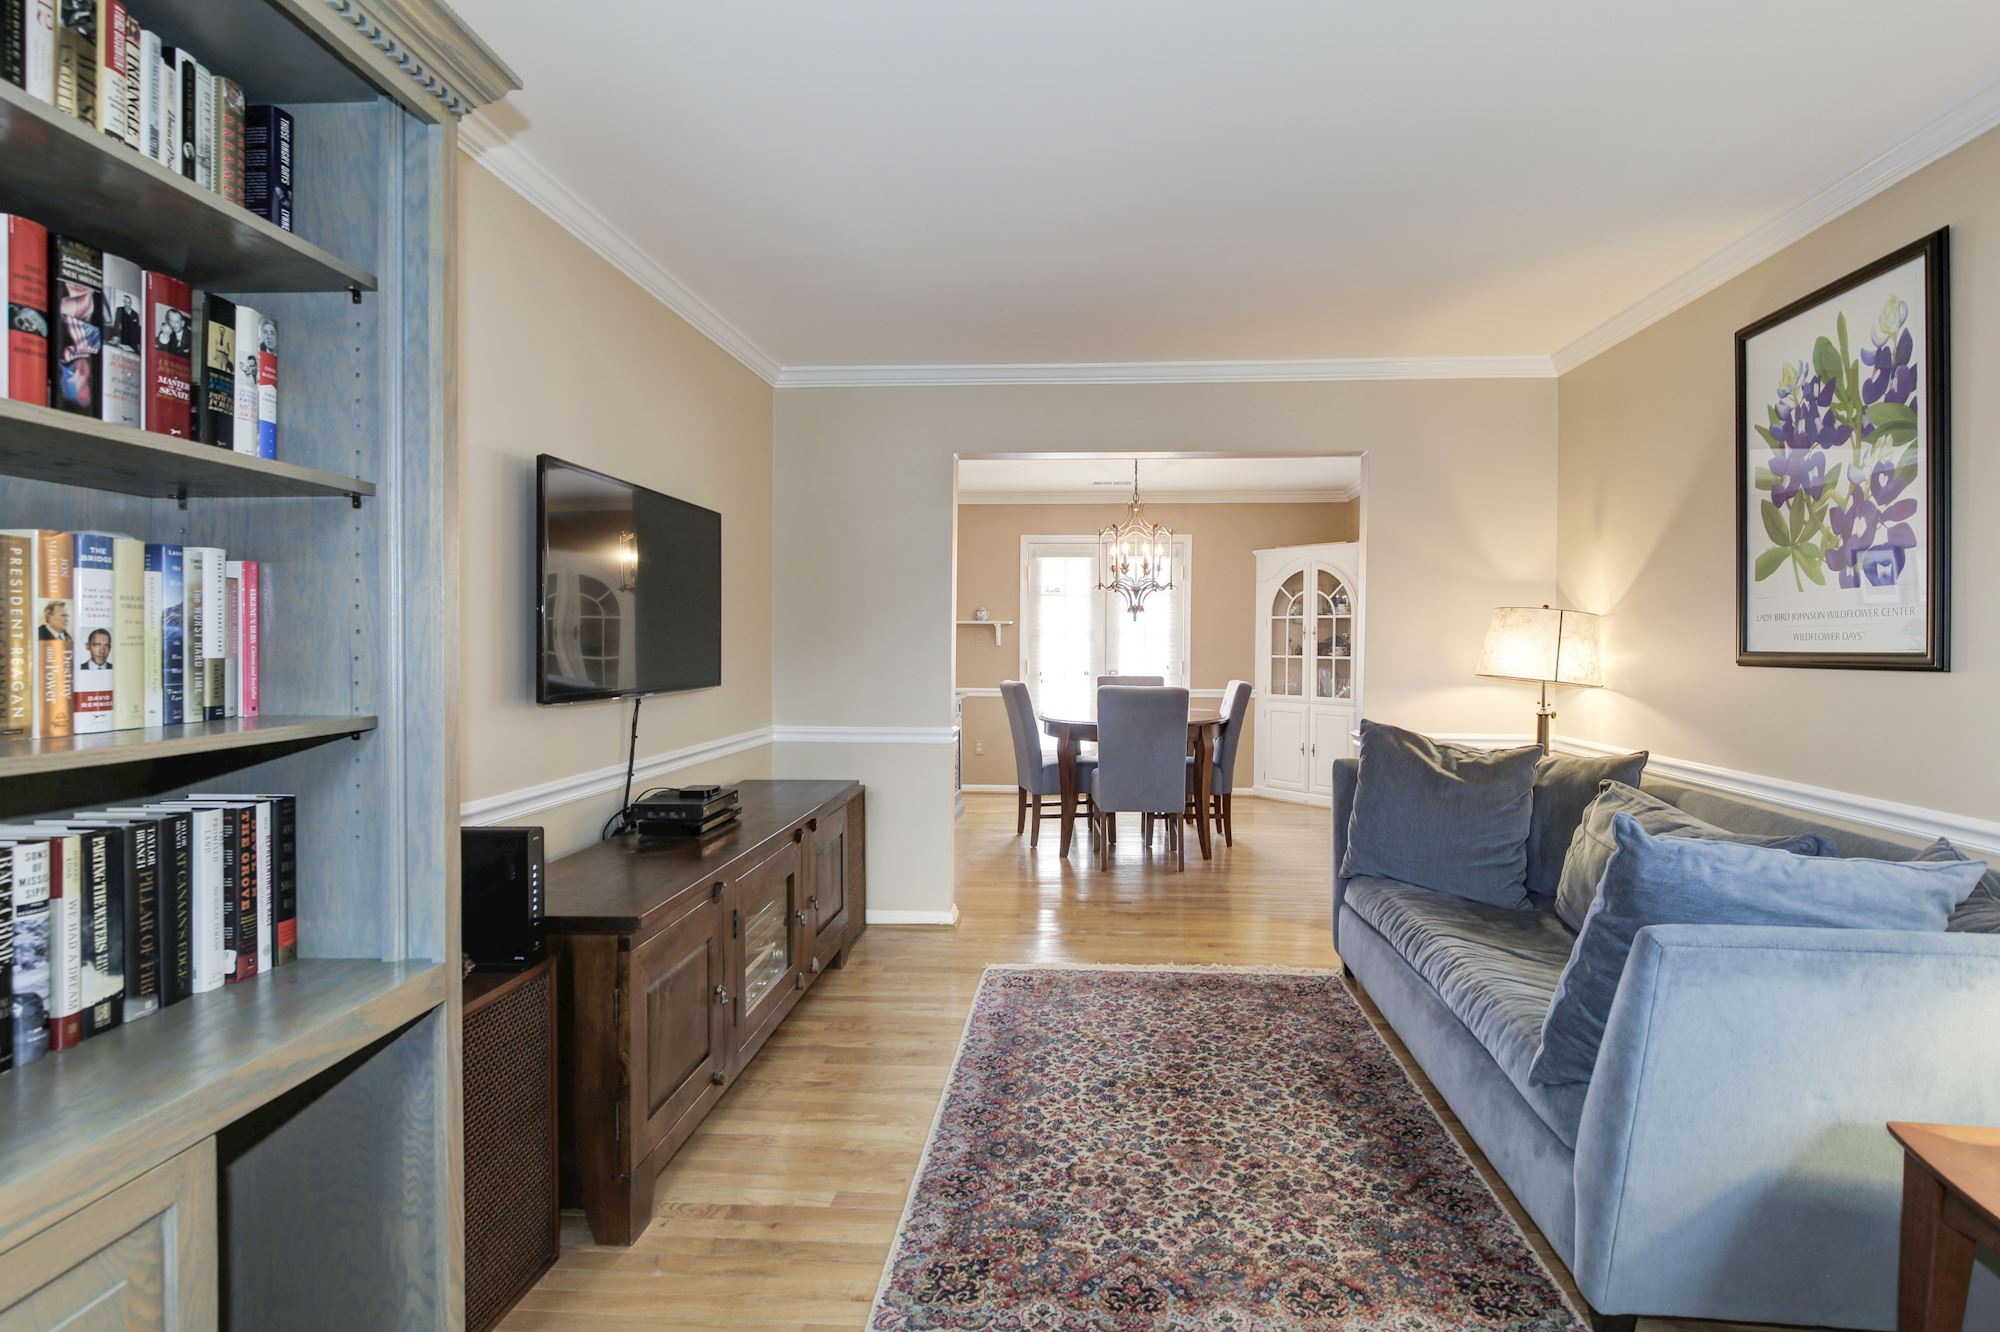 SOLD: Updated 3 bedroom Townhome in Bethesda